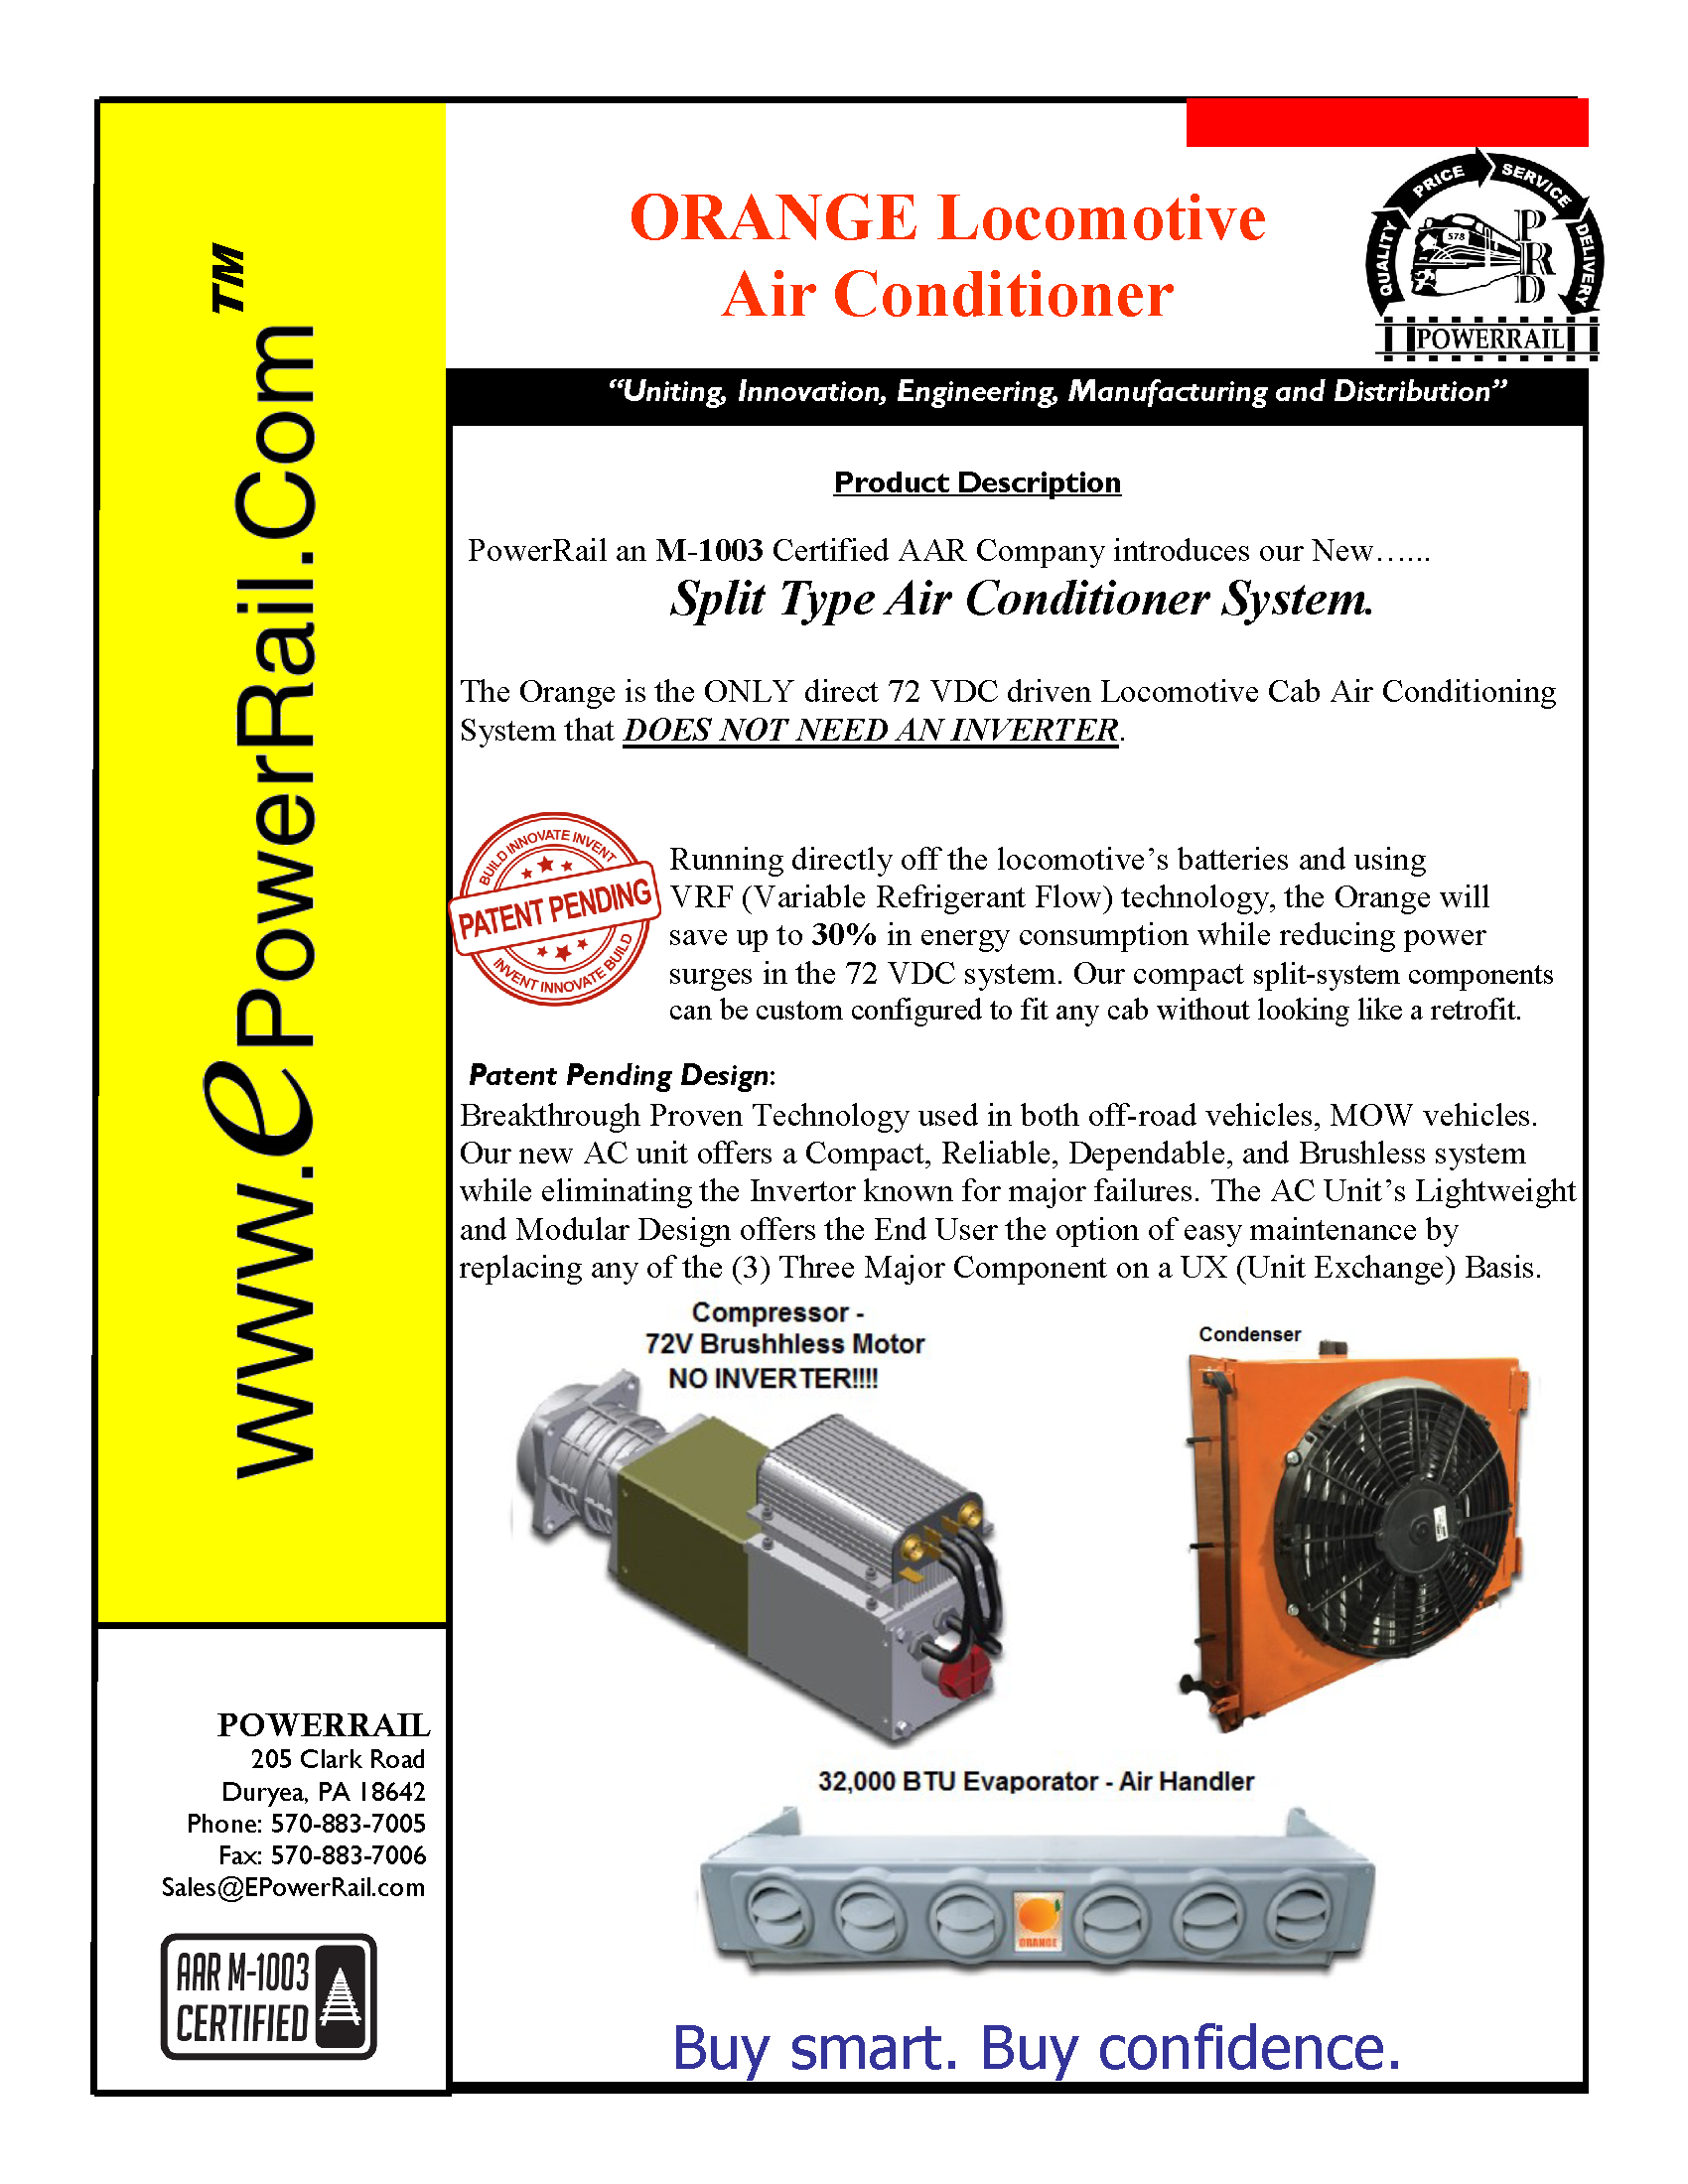 ORANGE Locomotive Air Conditioner